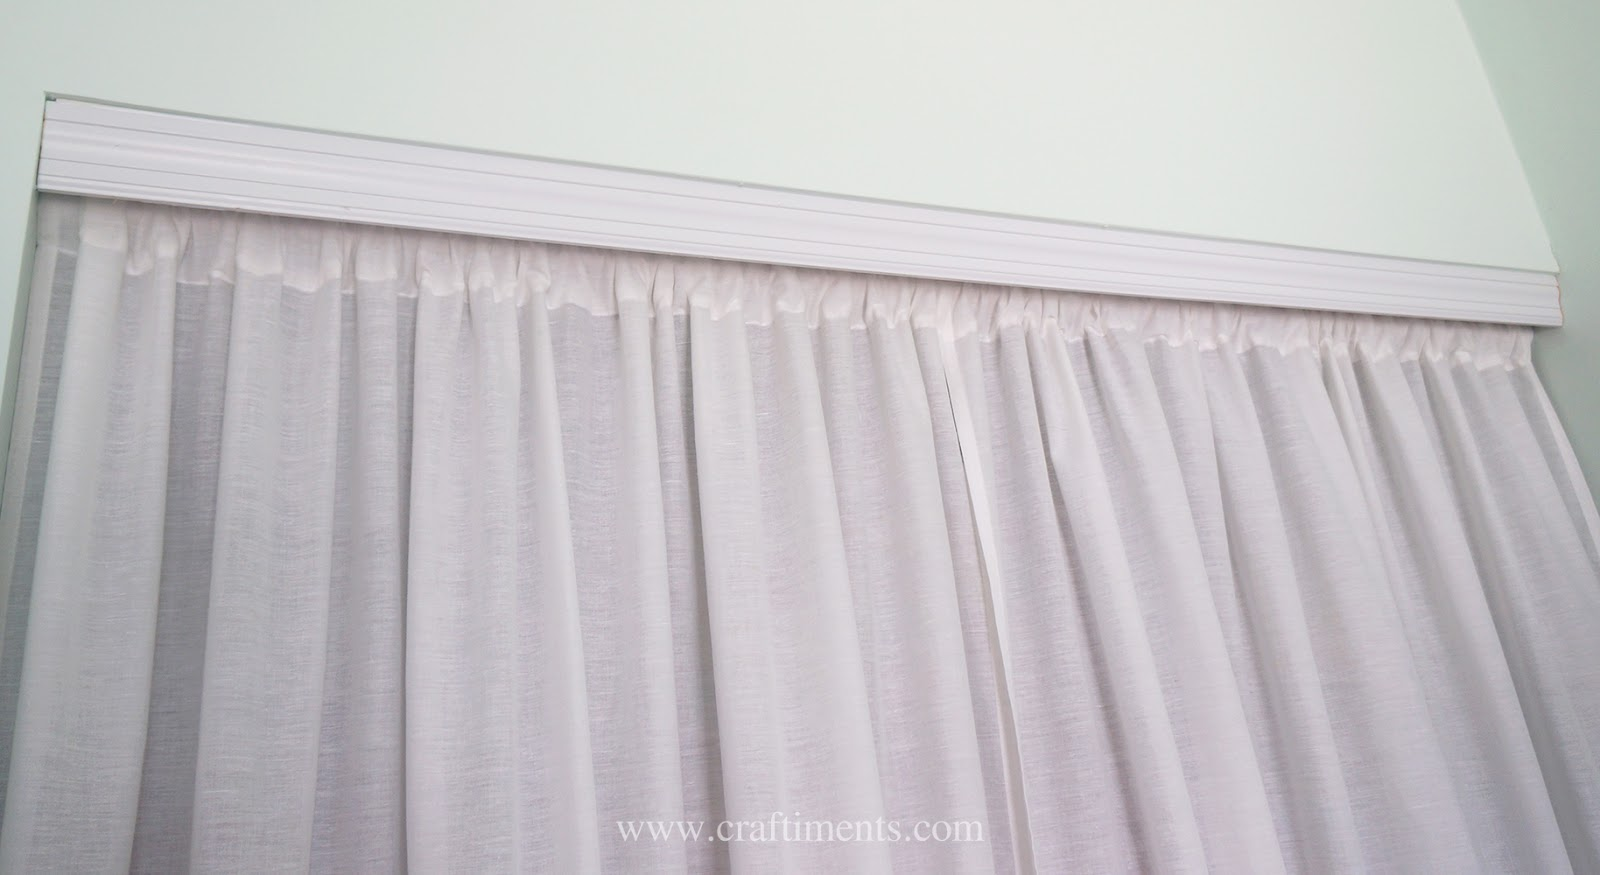 craftiments replacing closet doors with curtains made. Black Bedroom Furniture Sets. Home Design Ideas